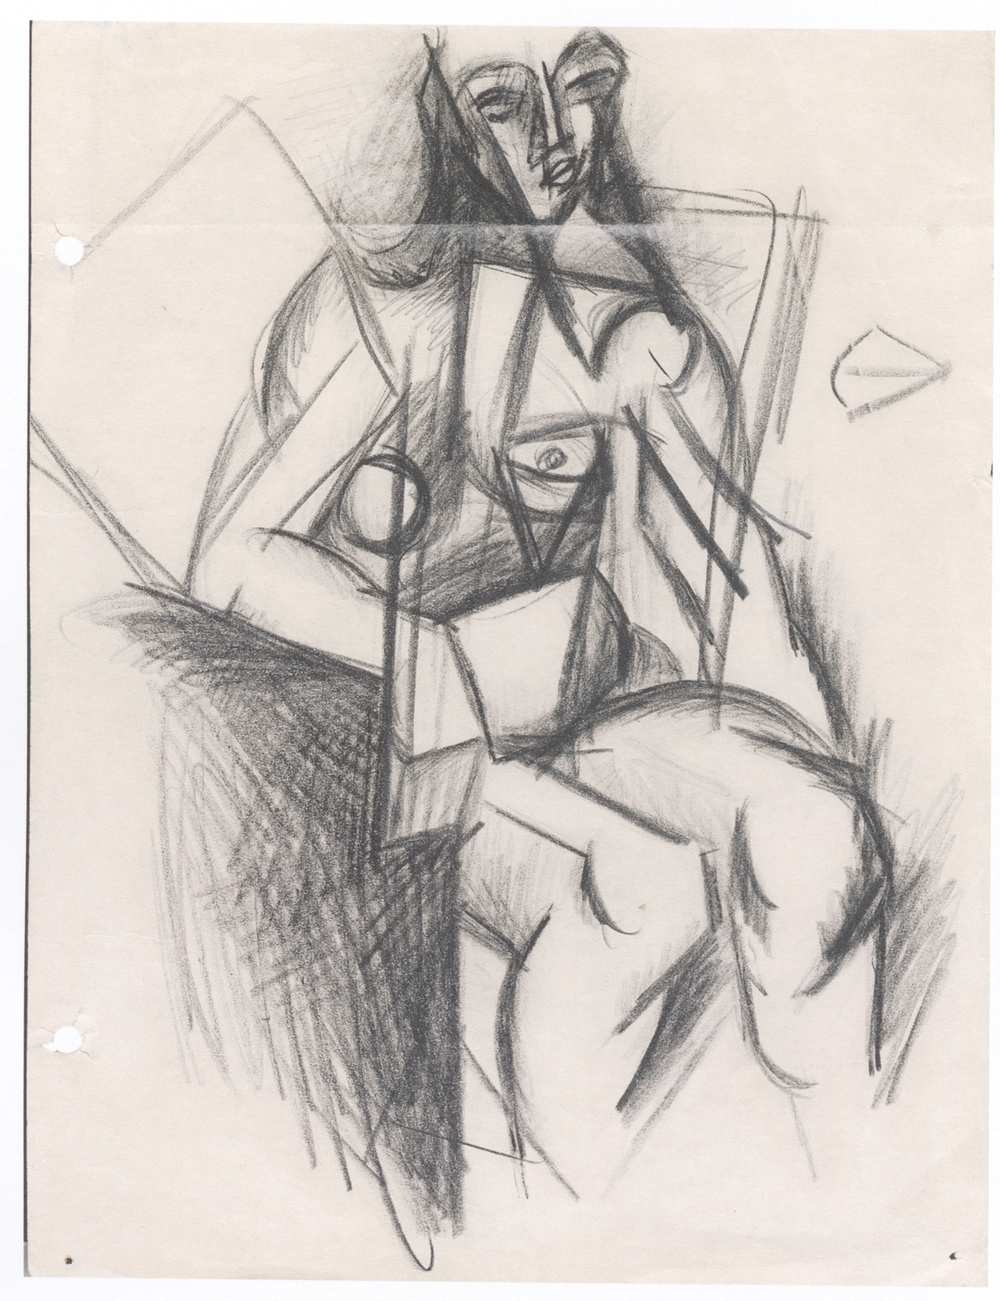 Arshile Gorky  Untitled  1935 Pencil on paper 11 x 8 in. (27.9 x 20.3 cm.)